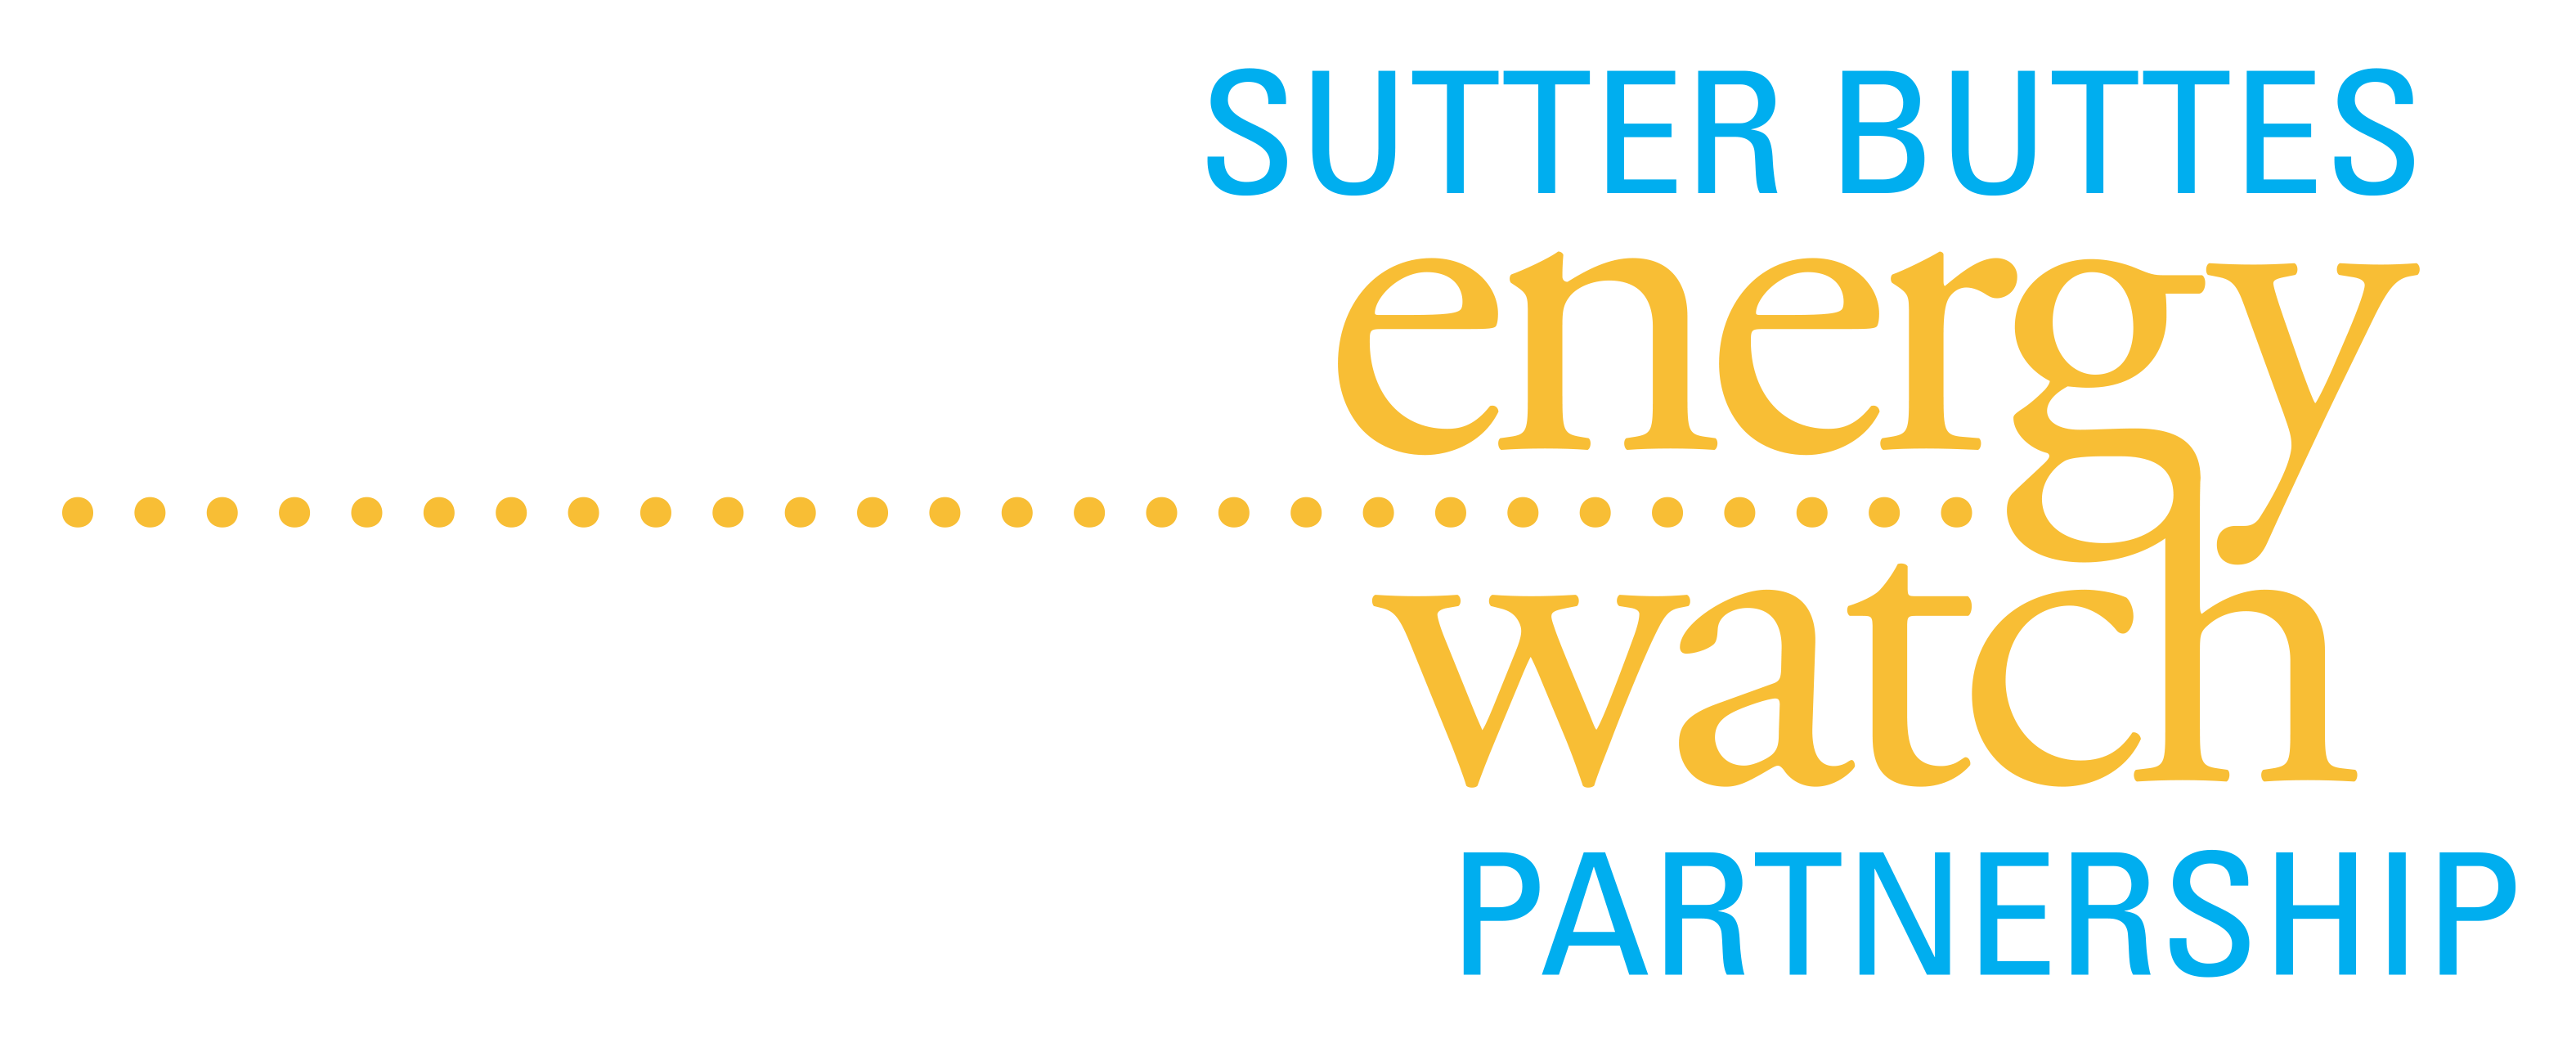 LOGO_Sutter_Buttes_Energy_Watch